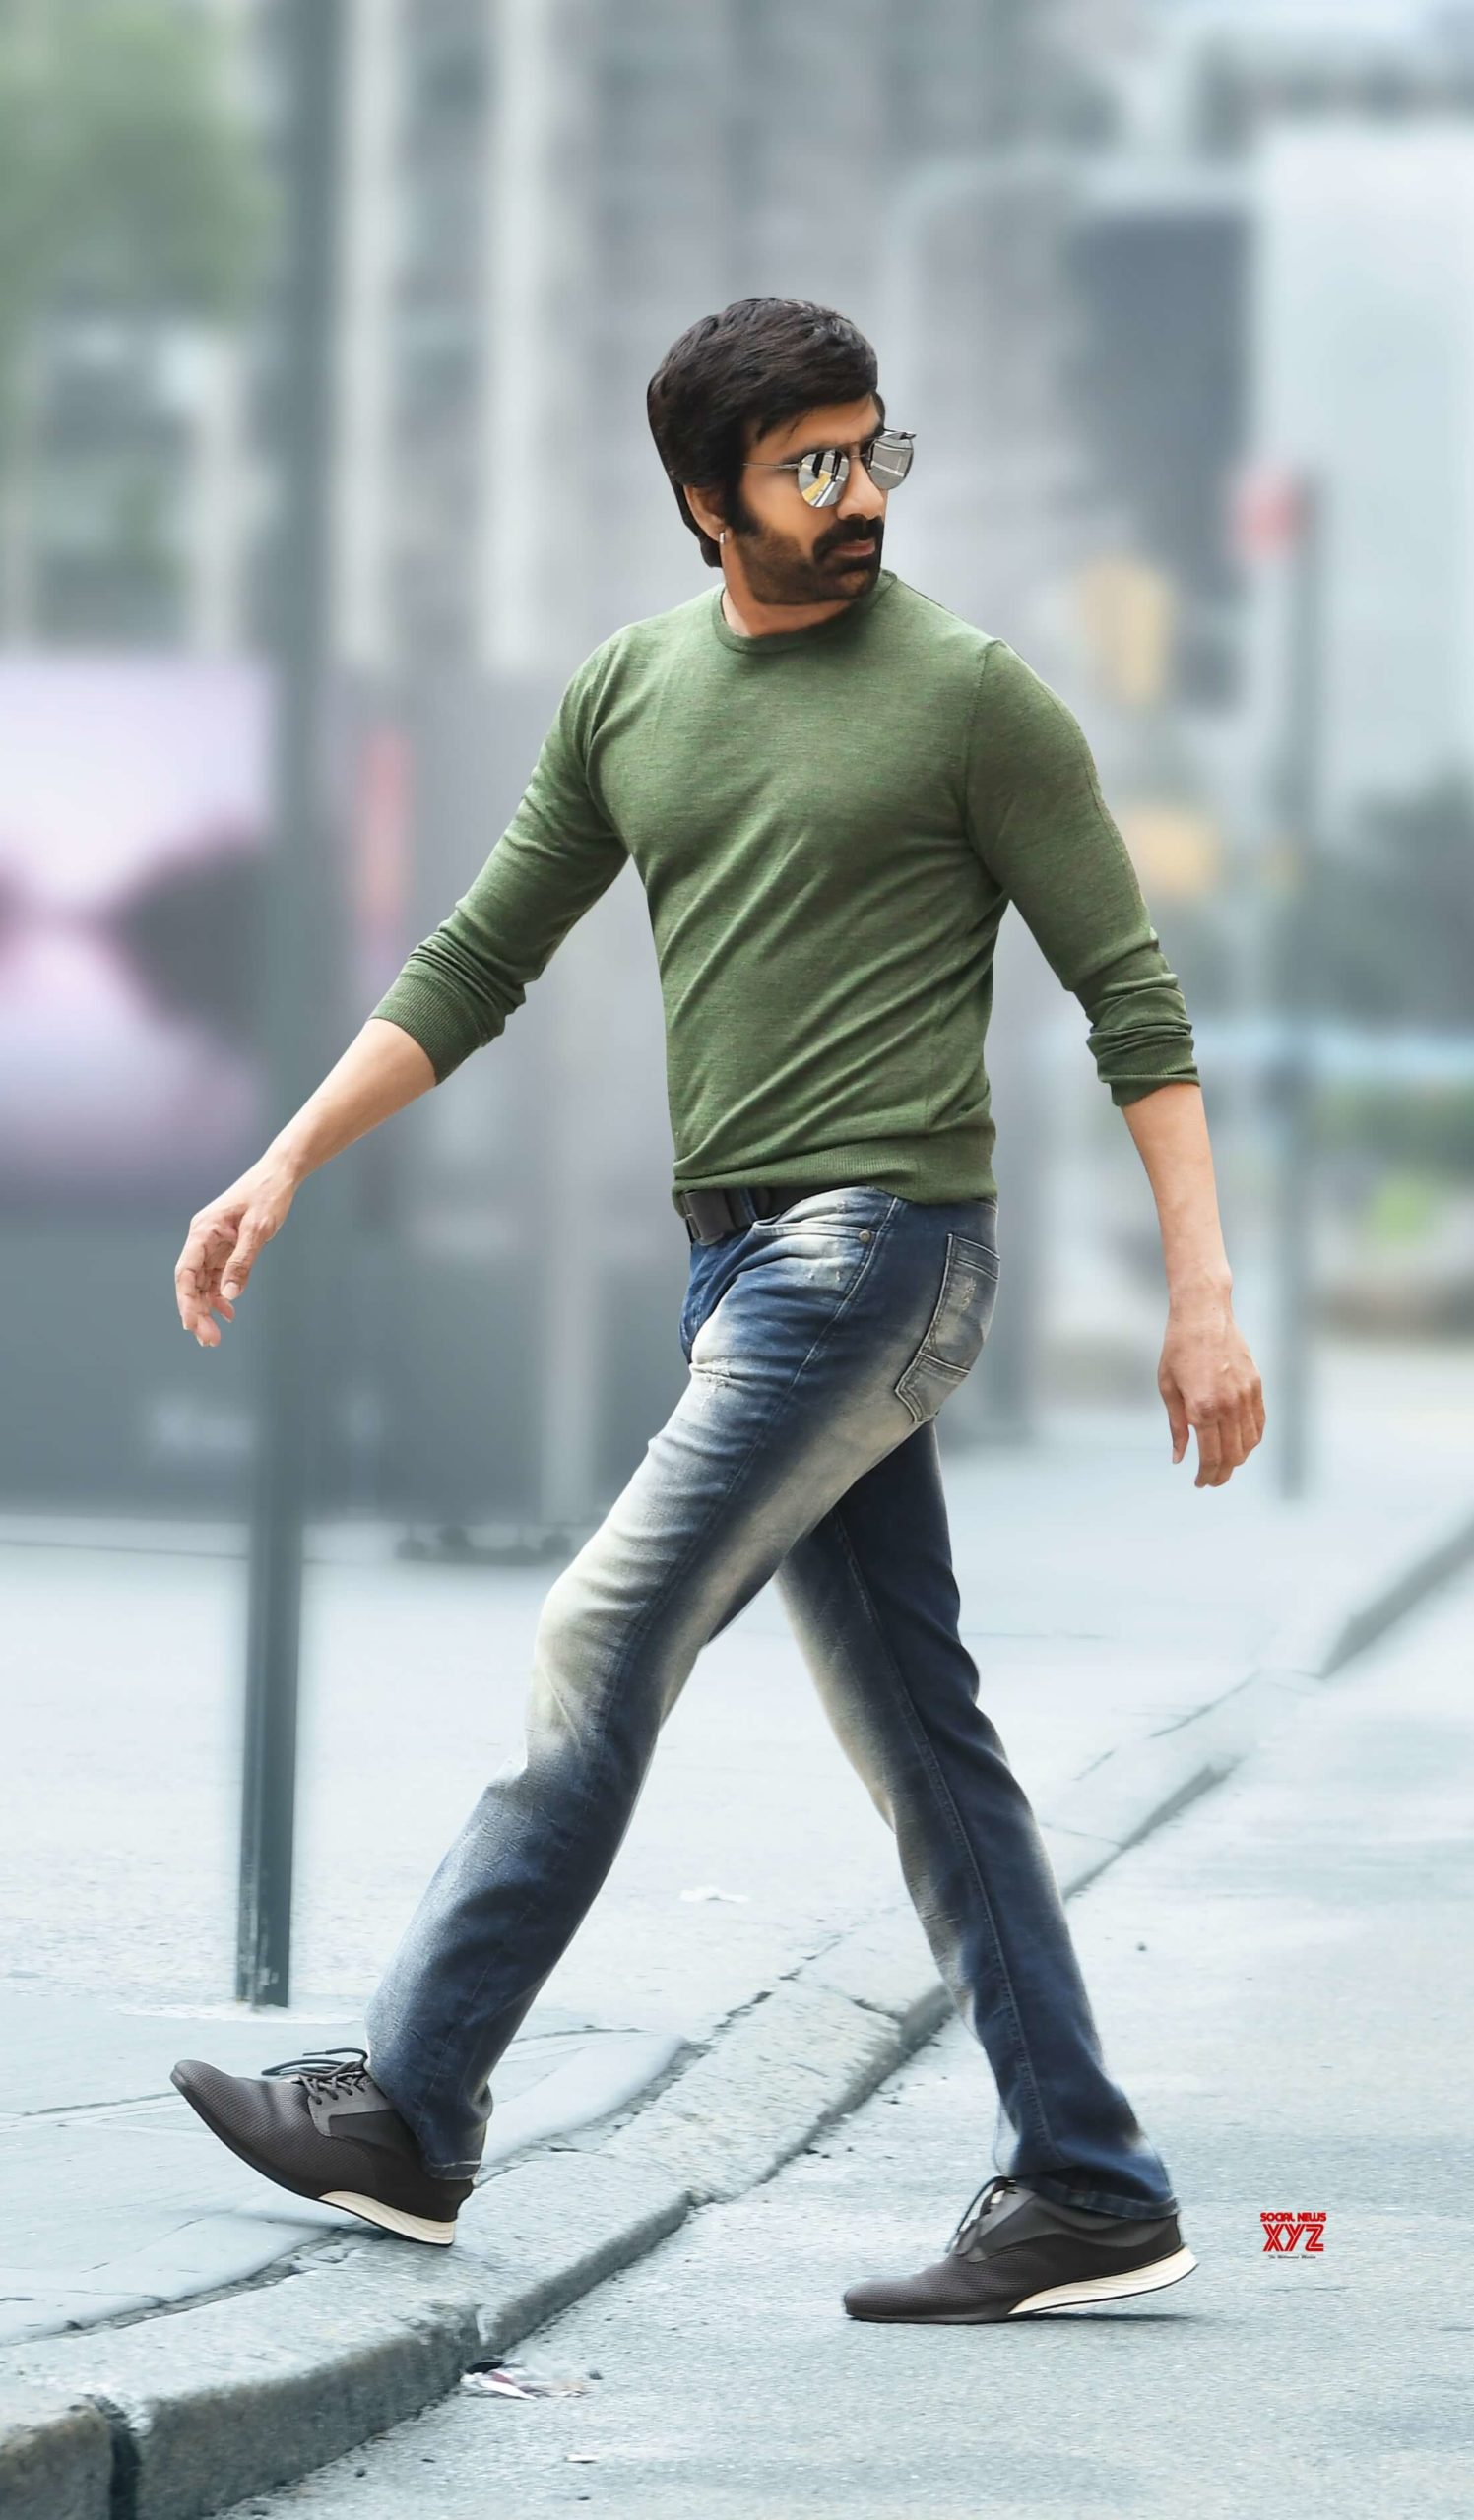 Ravi Teja Movie, Photos(images), Date Of Birth, Family, Brother, Height, Biography, Net Worth, Age, Wife, Details, Education, Instagram, Twitter, Wiki, Imdb, Facebook, Hairstyle, Youtube (47)